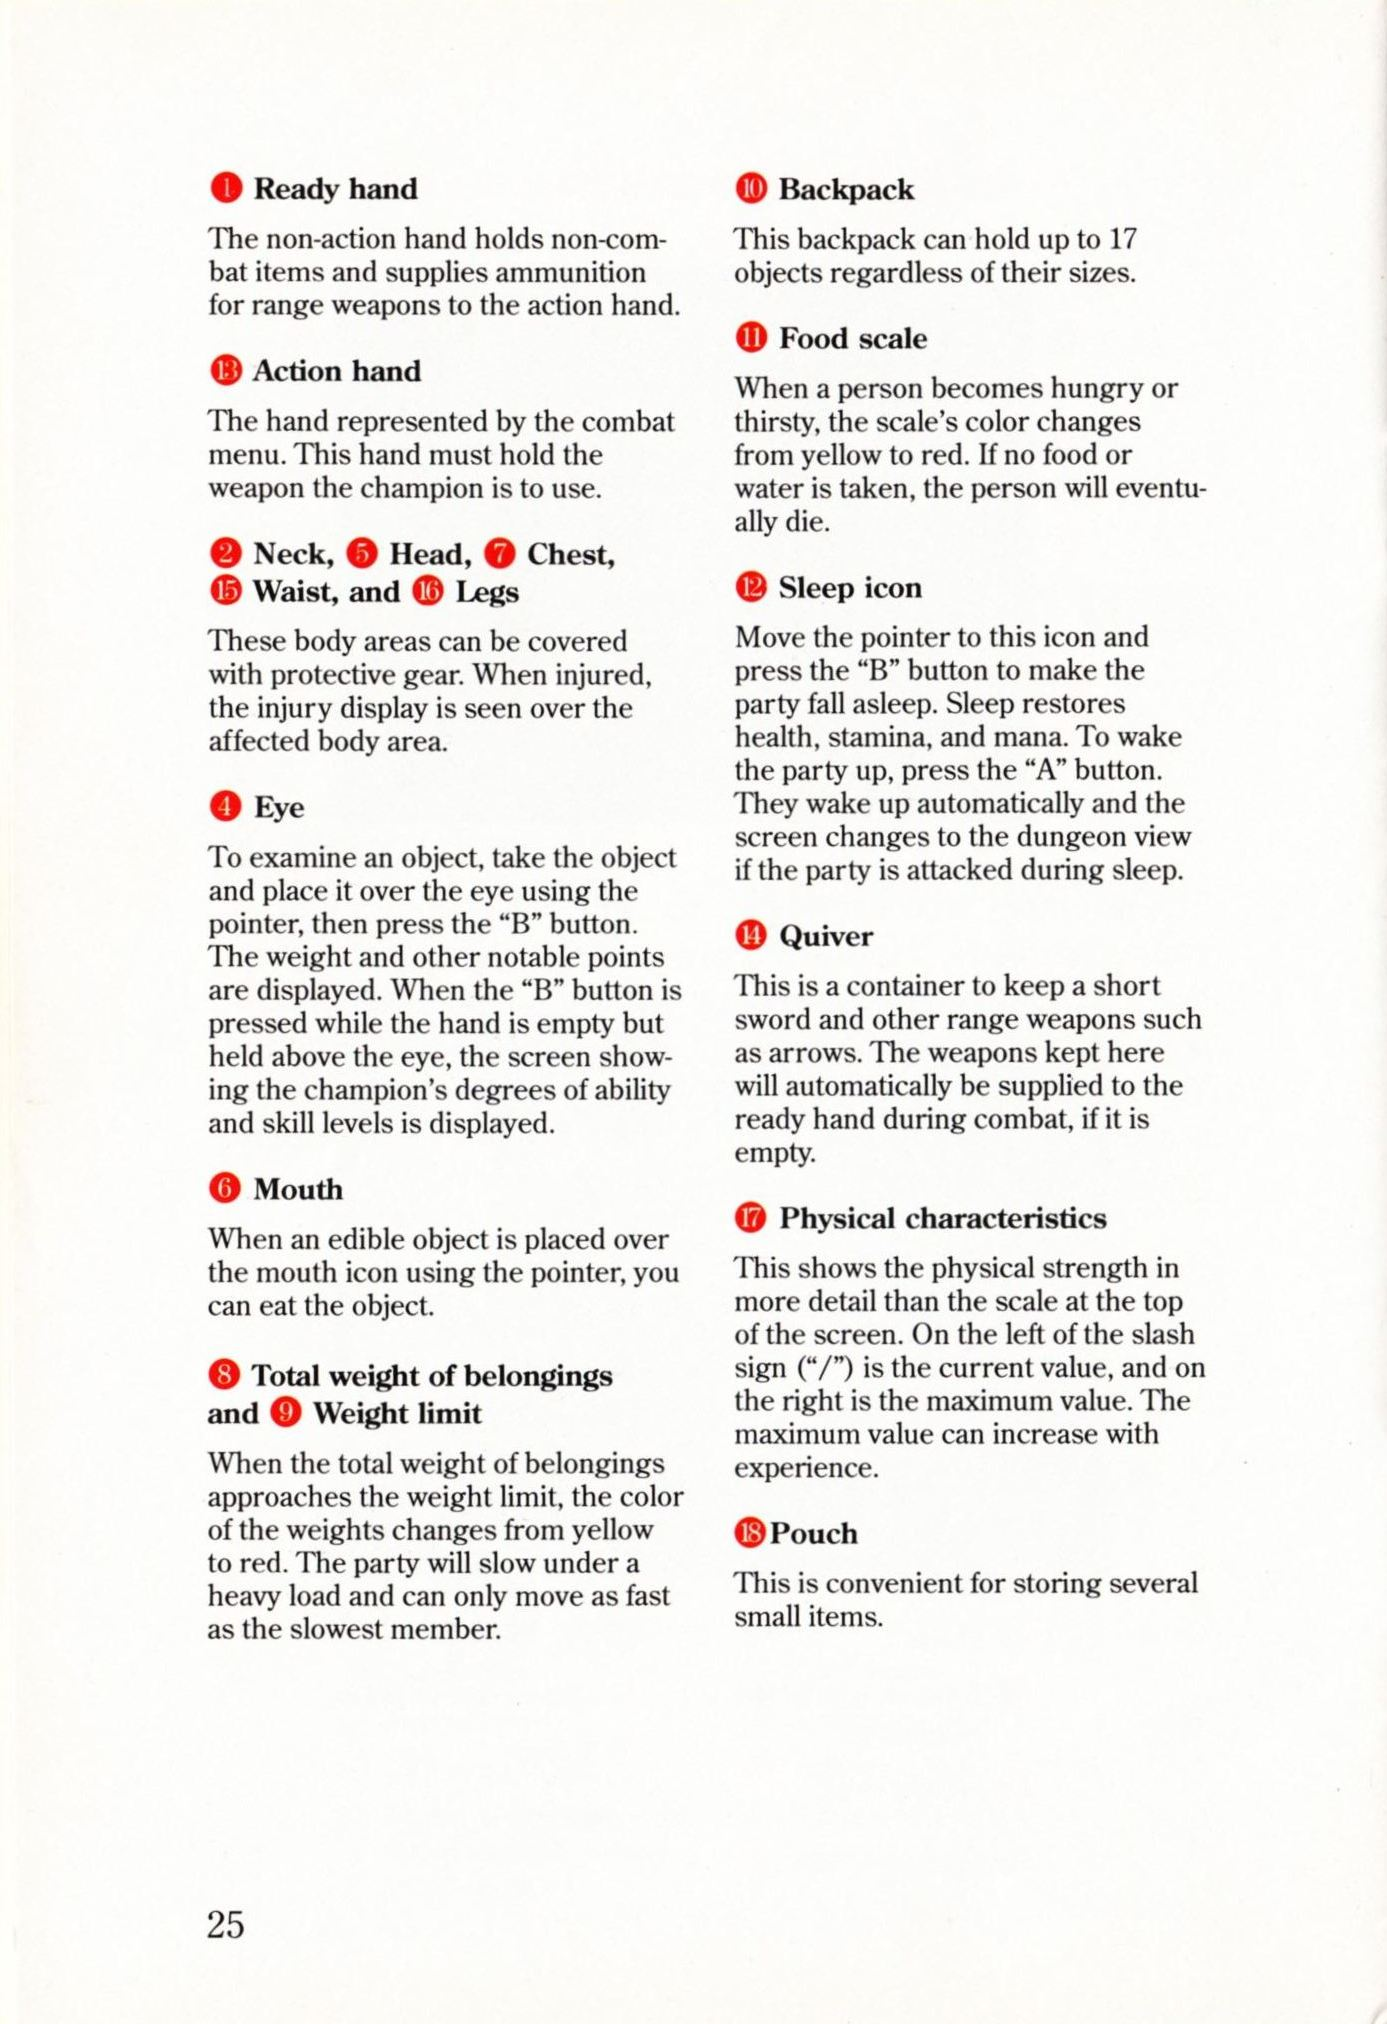 Game - Dungeon Master - US - Super NES - Manual - Page 028 - Scan